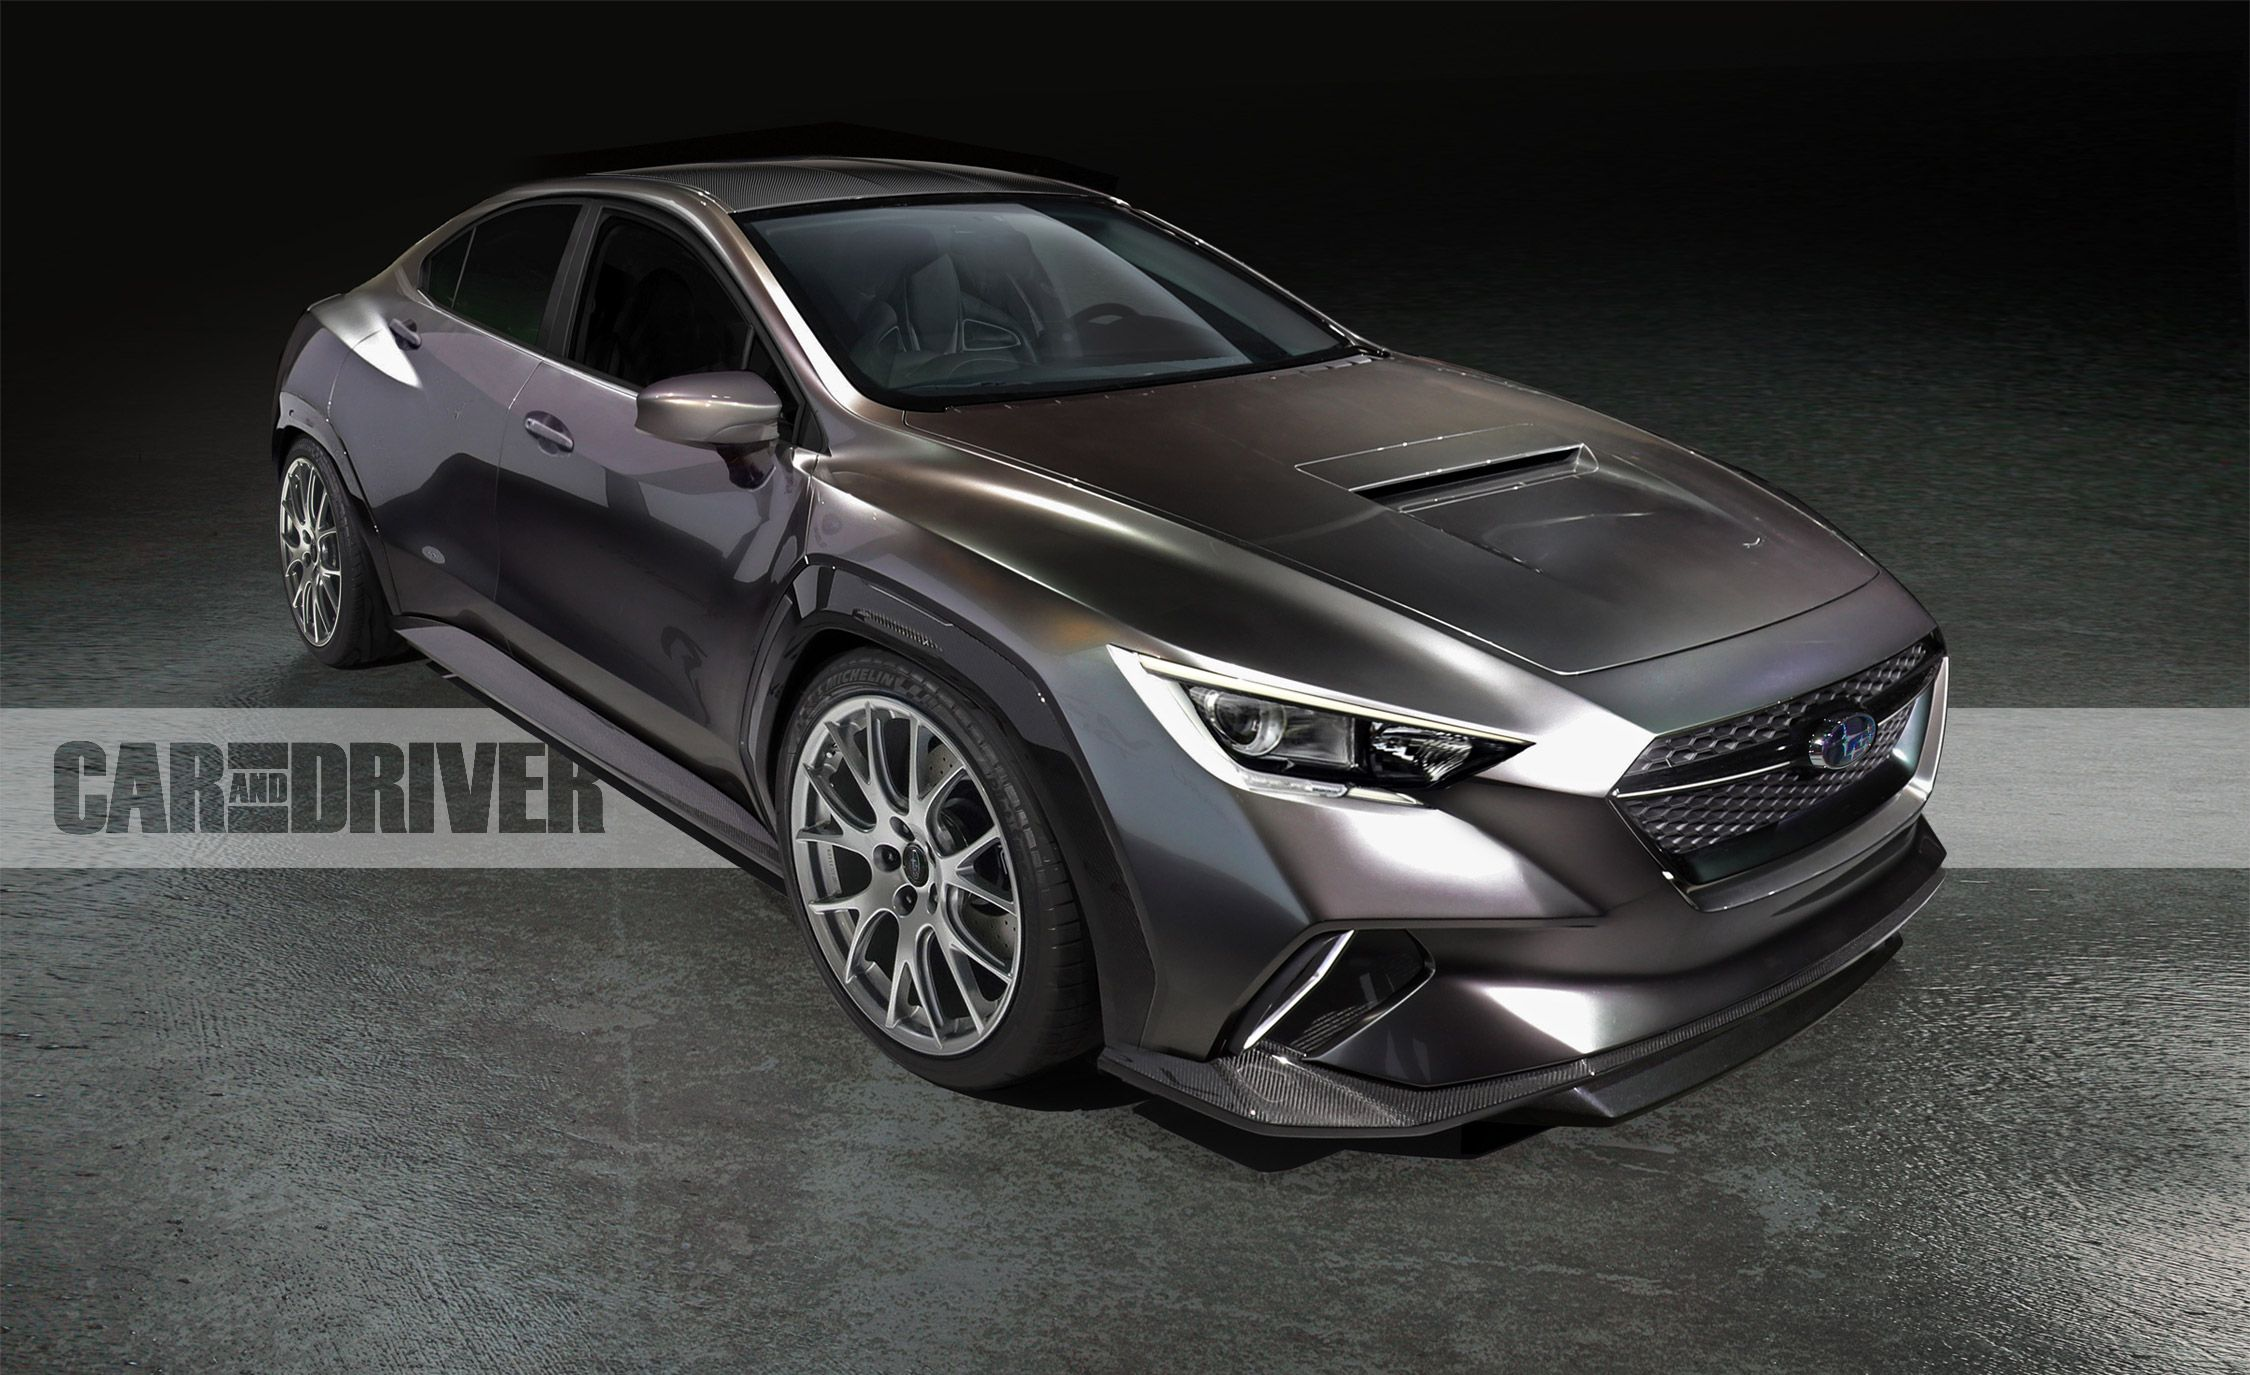 2020 Subaru Wrx This Could Be Its Most Important Redesign Yet 25